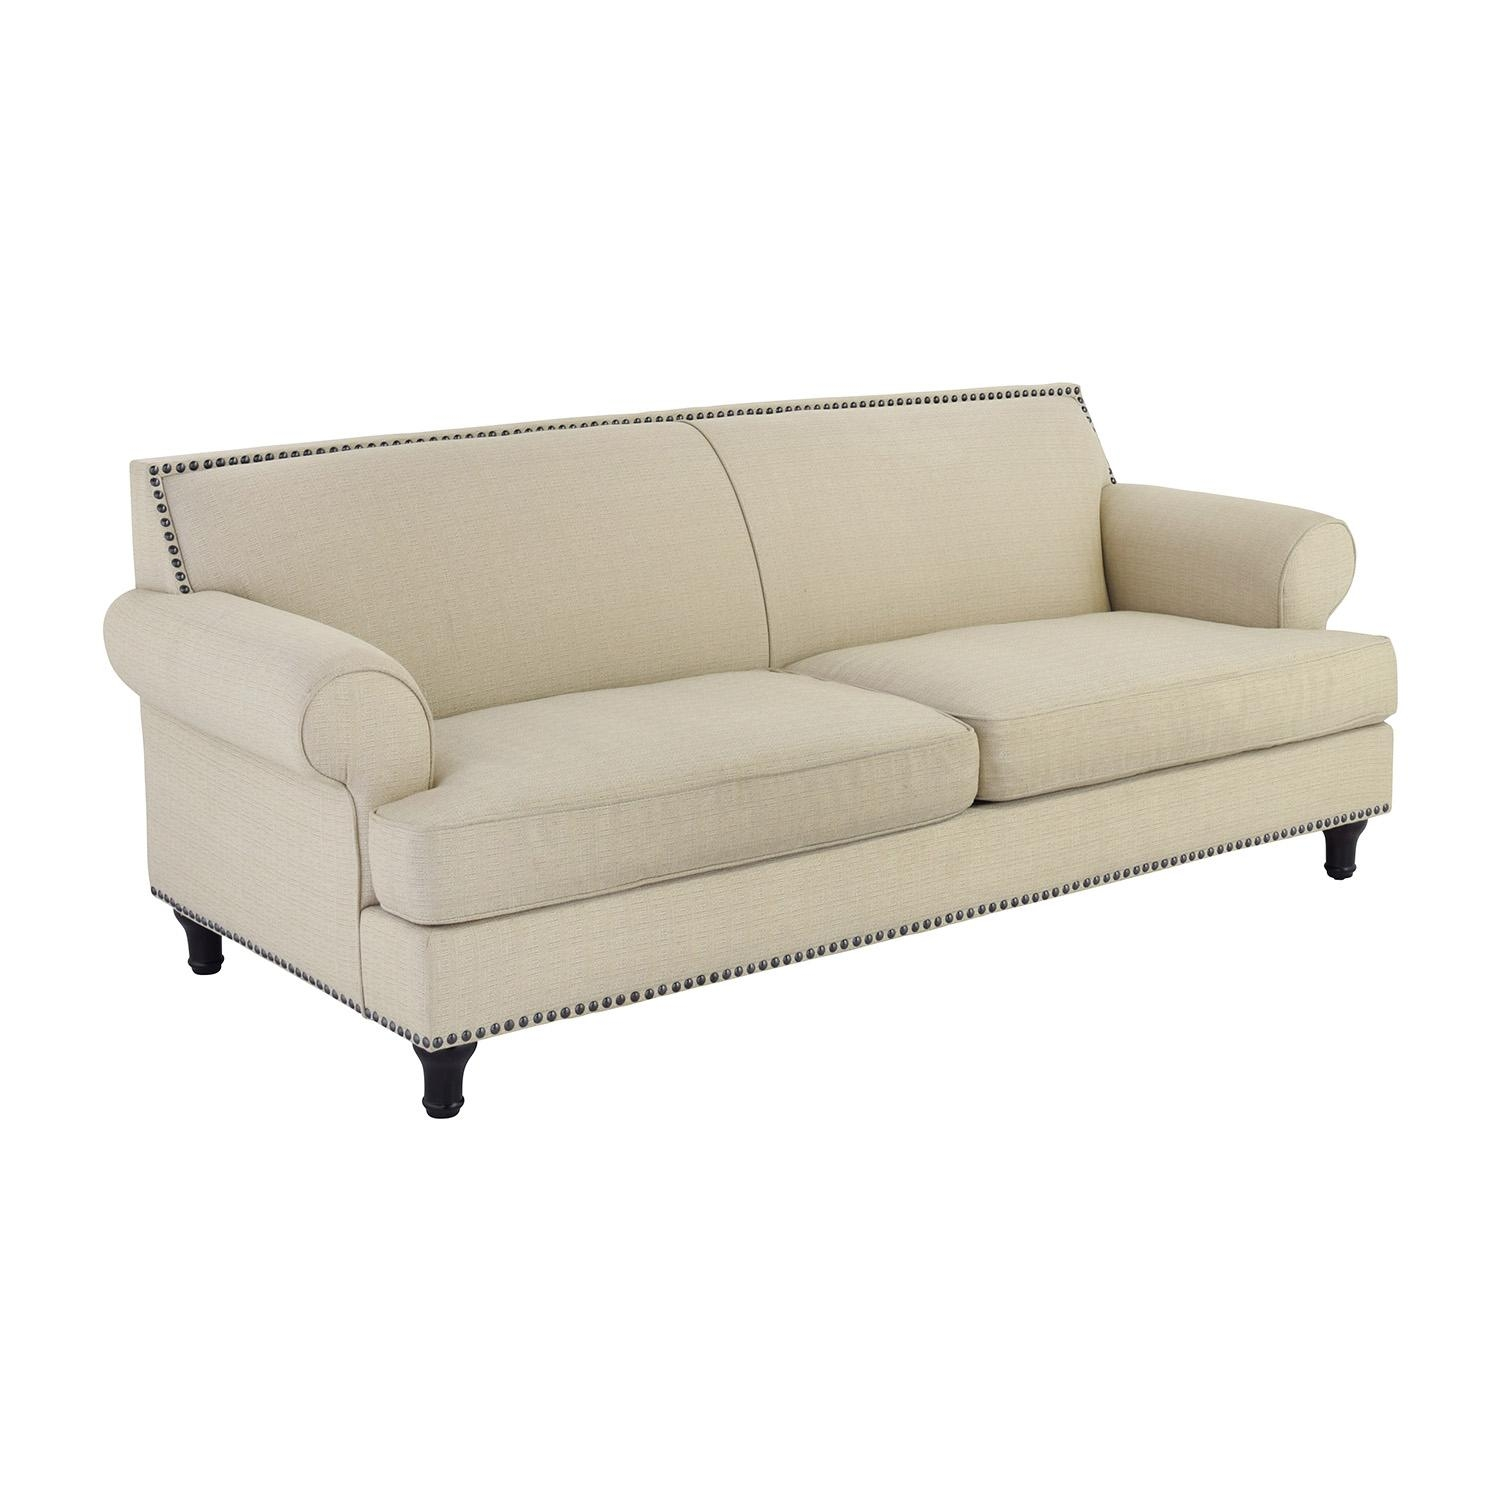 48% Off – Pier 1 Pier 1 Carmen Tan Couch With Studs / Sofas Inside Pier 1 Carmen Sofas (View 3 of 20)